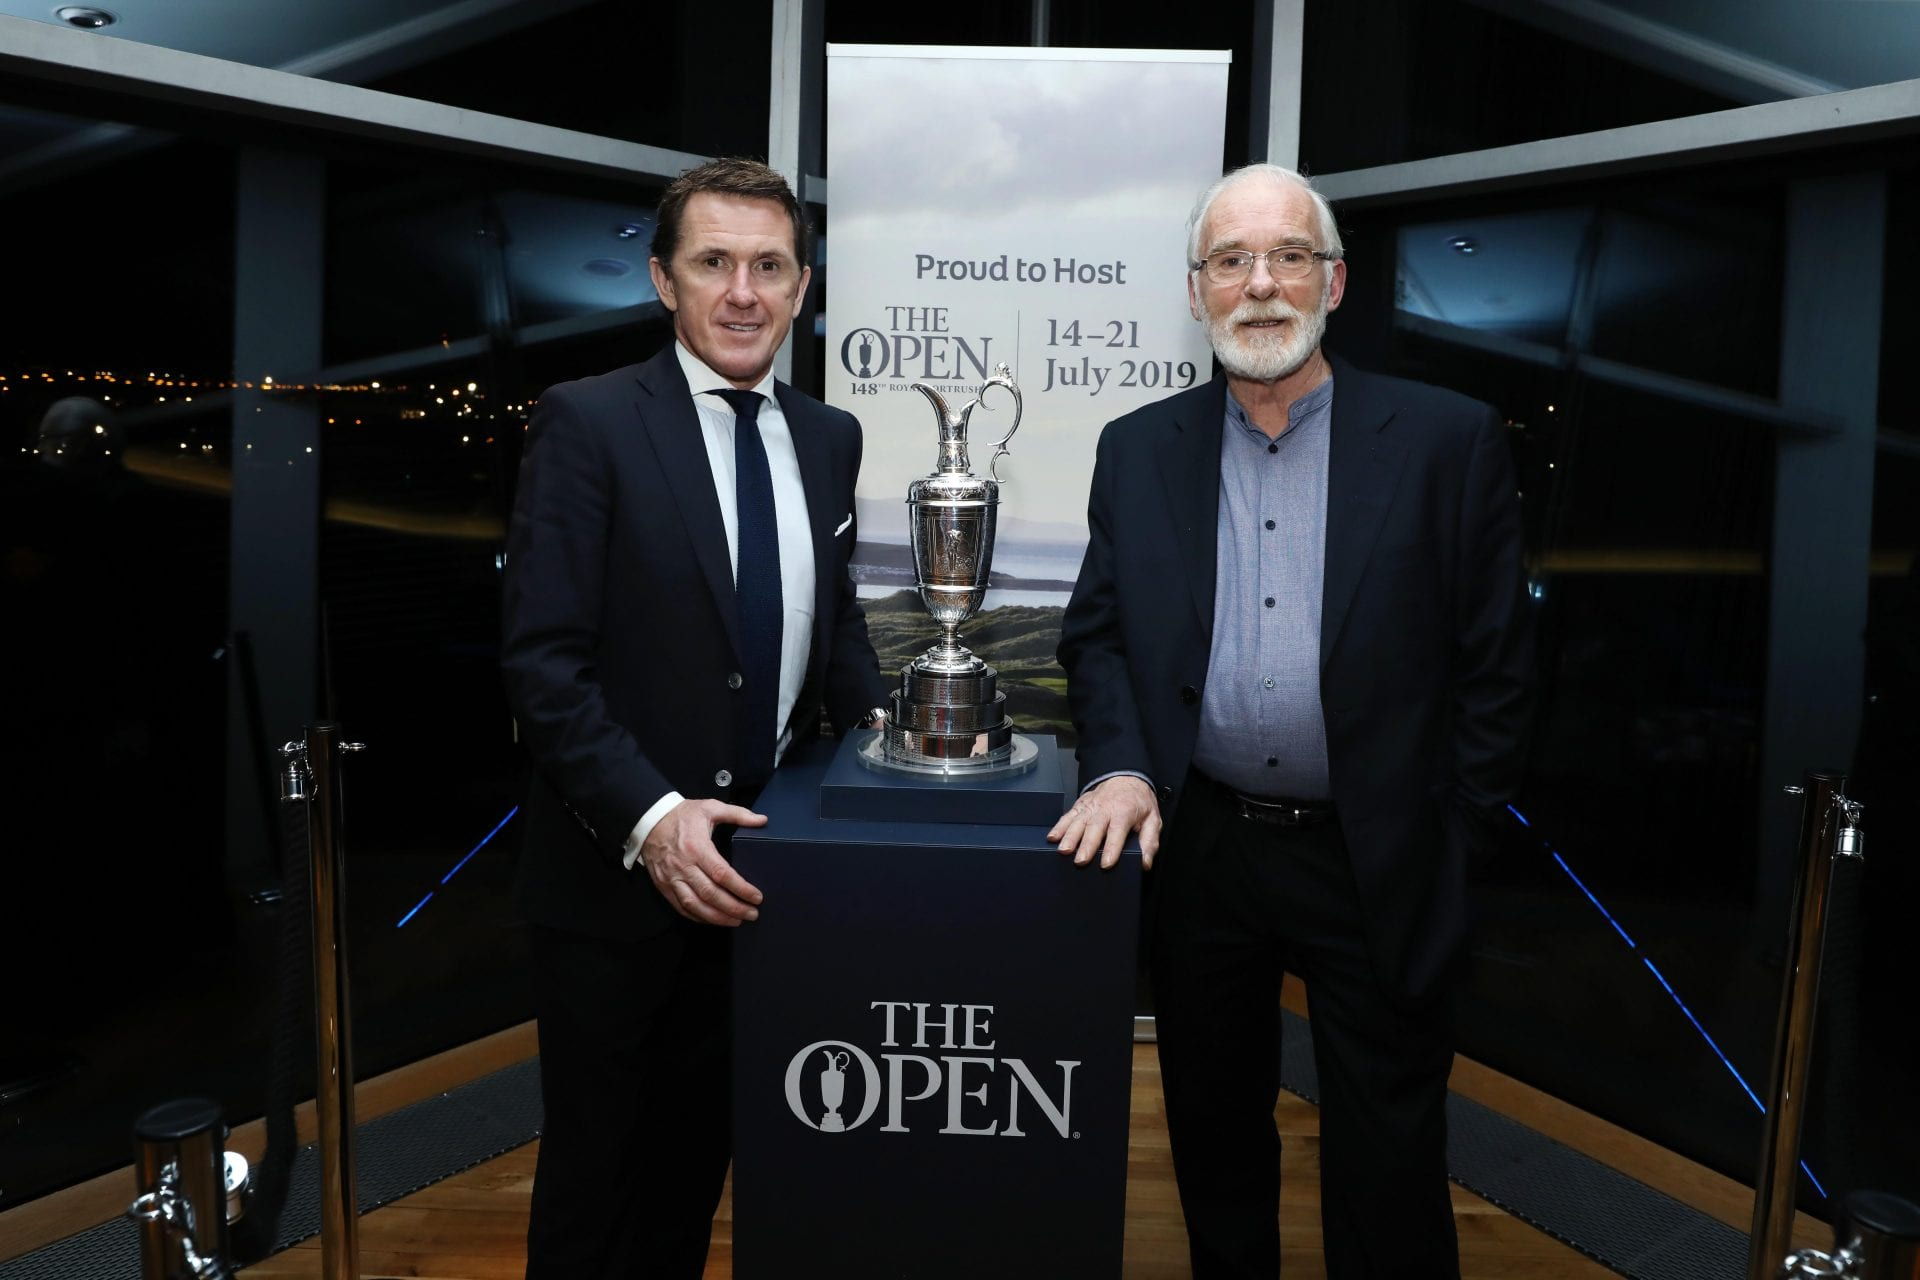 The 148th Open at Royal Portrush